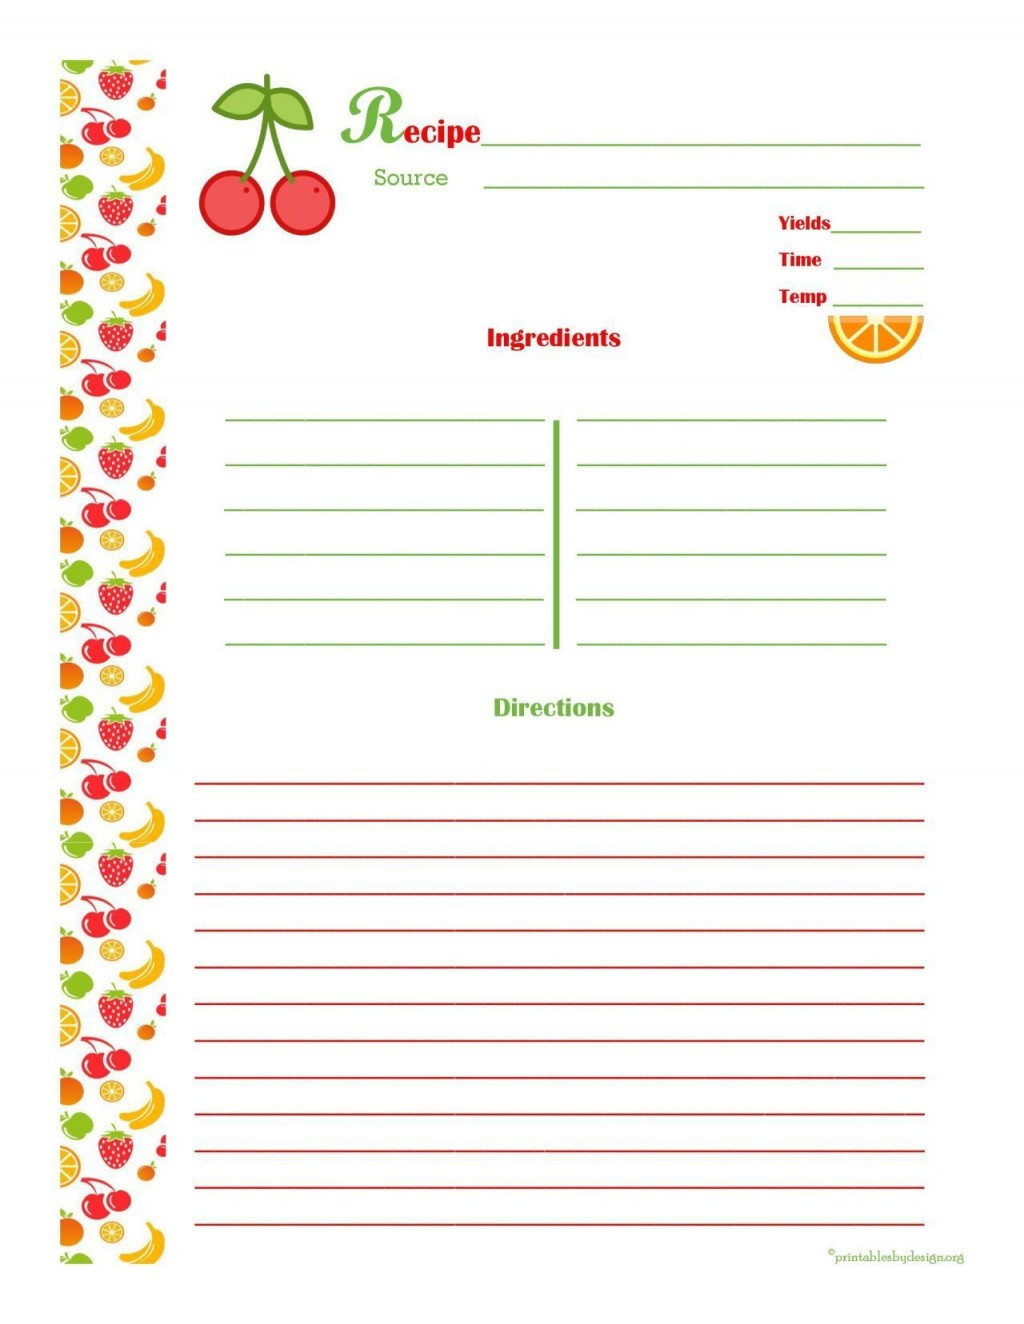 001 Fascinating Editable Recipe Card Template High Definition  Free For Microsoft Word 4x6 PageLarge